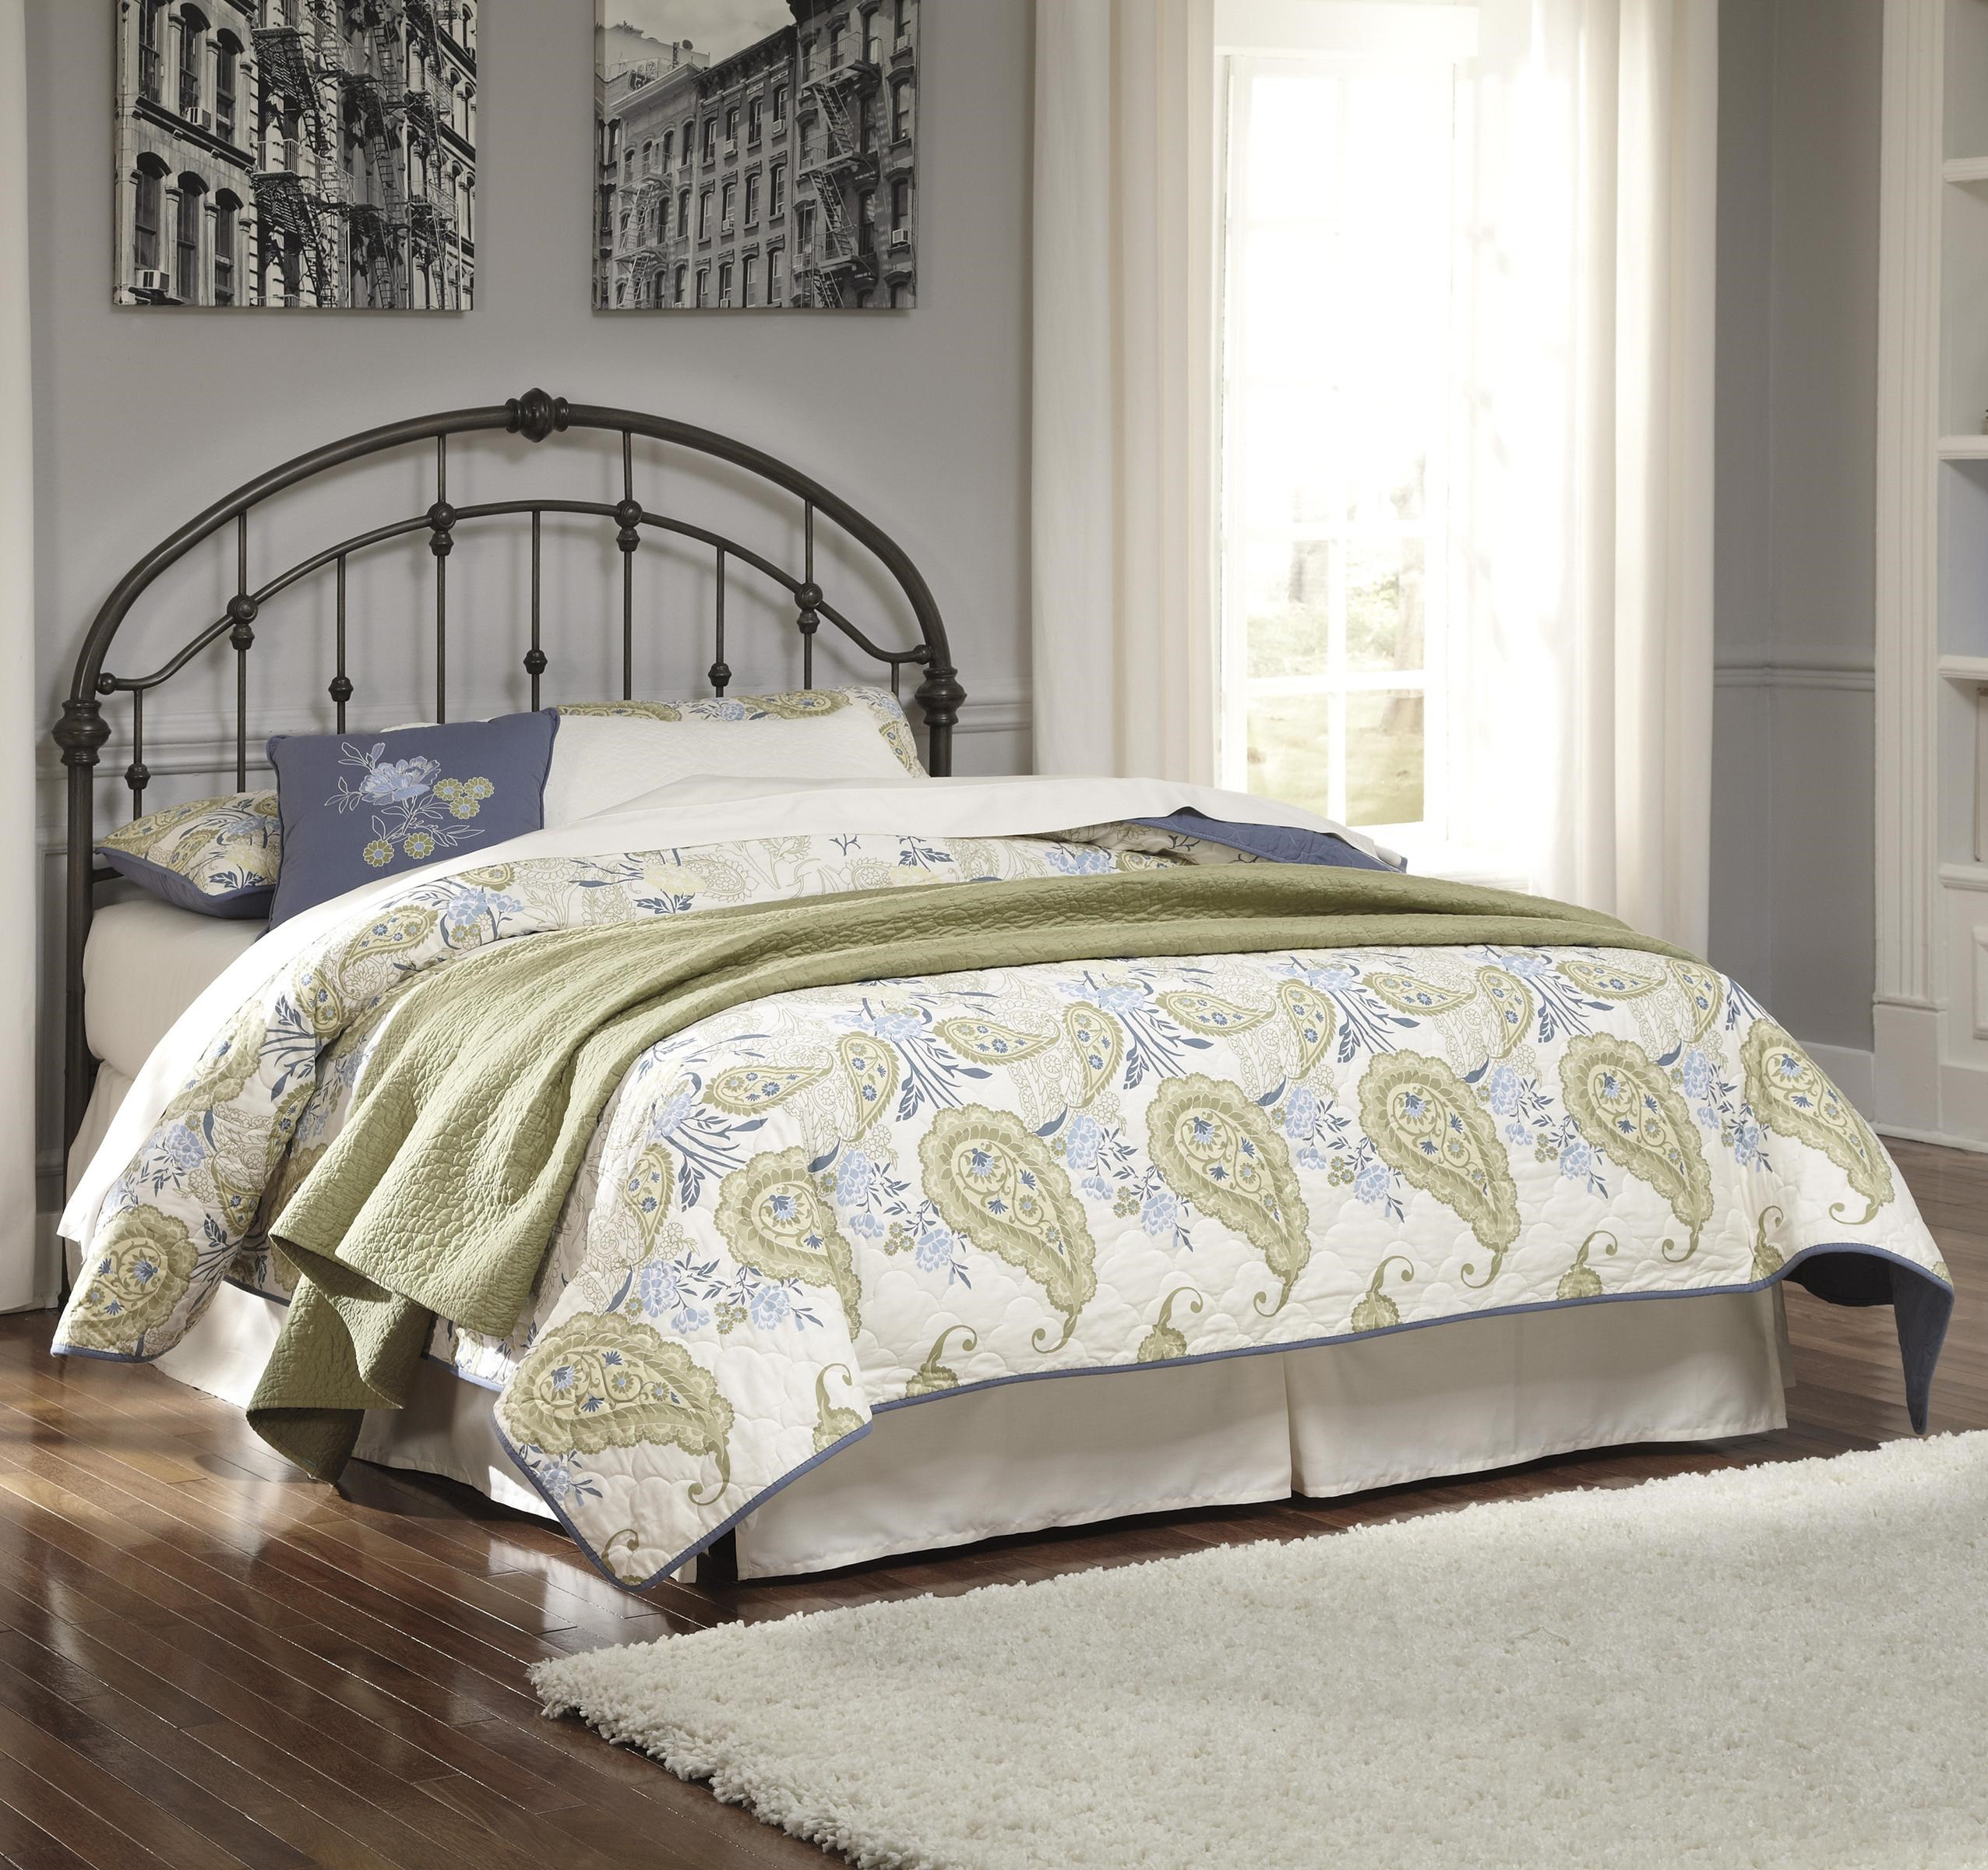 signature design by ashley nashburg queen arched metal headboard in bronze color finish